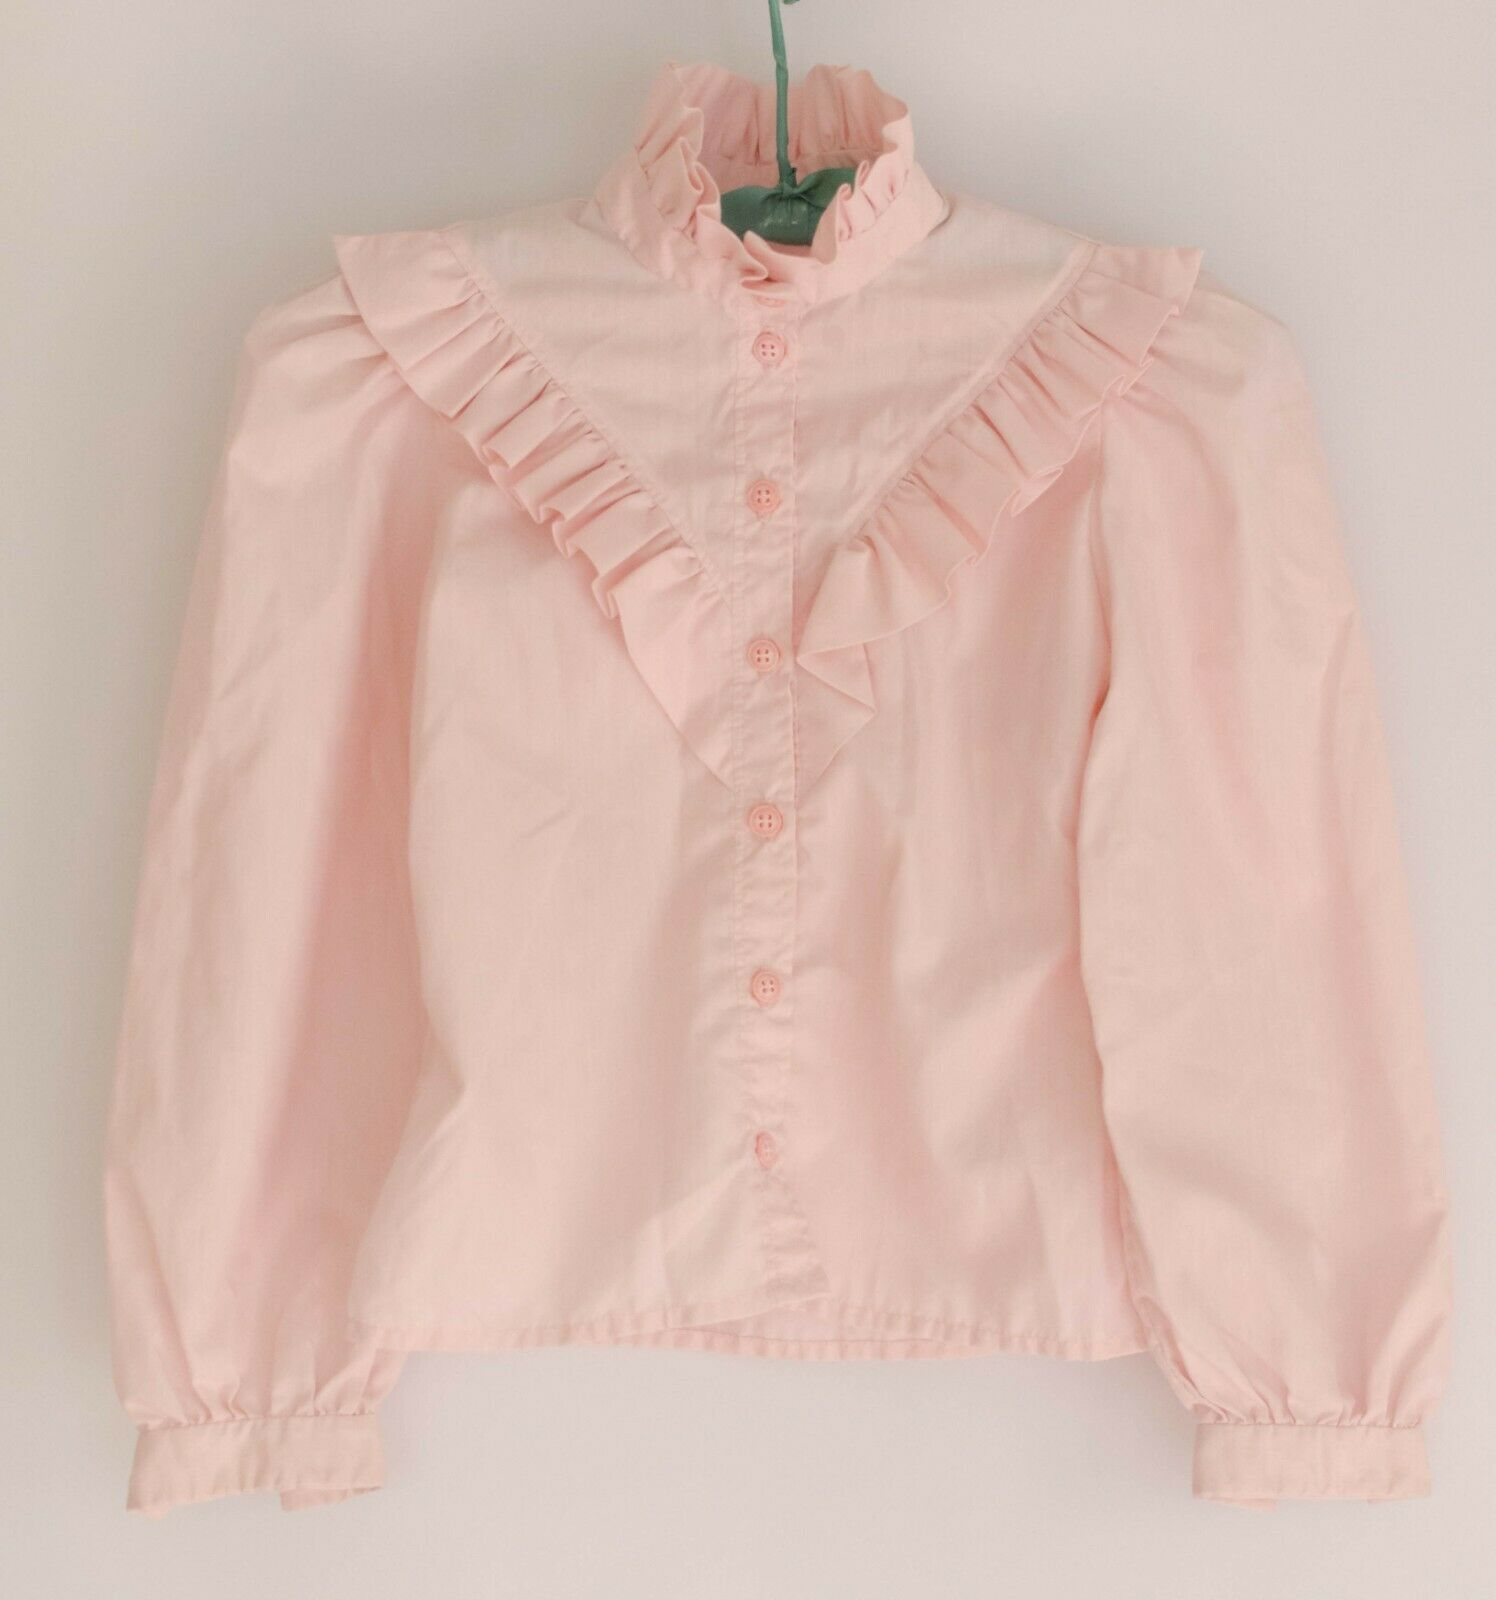 90s pink gingham embroidered blouse  vintage gingham pink cotton shirt  birds embroidery blouse  90s french summer blouse